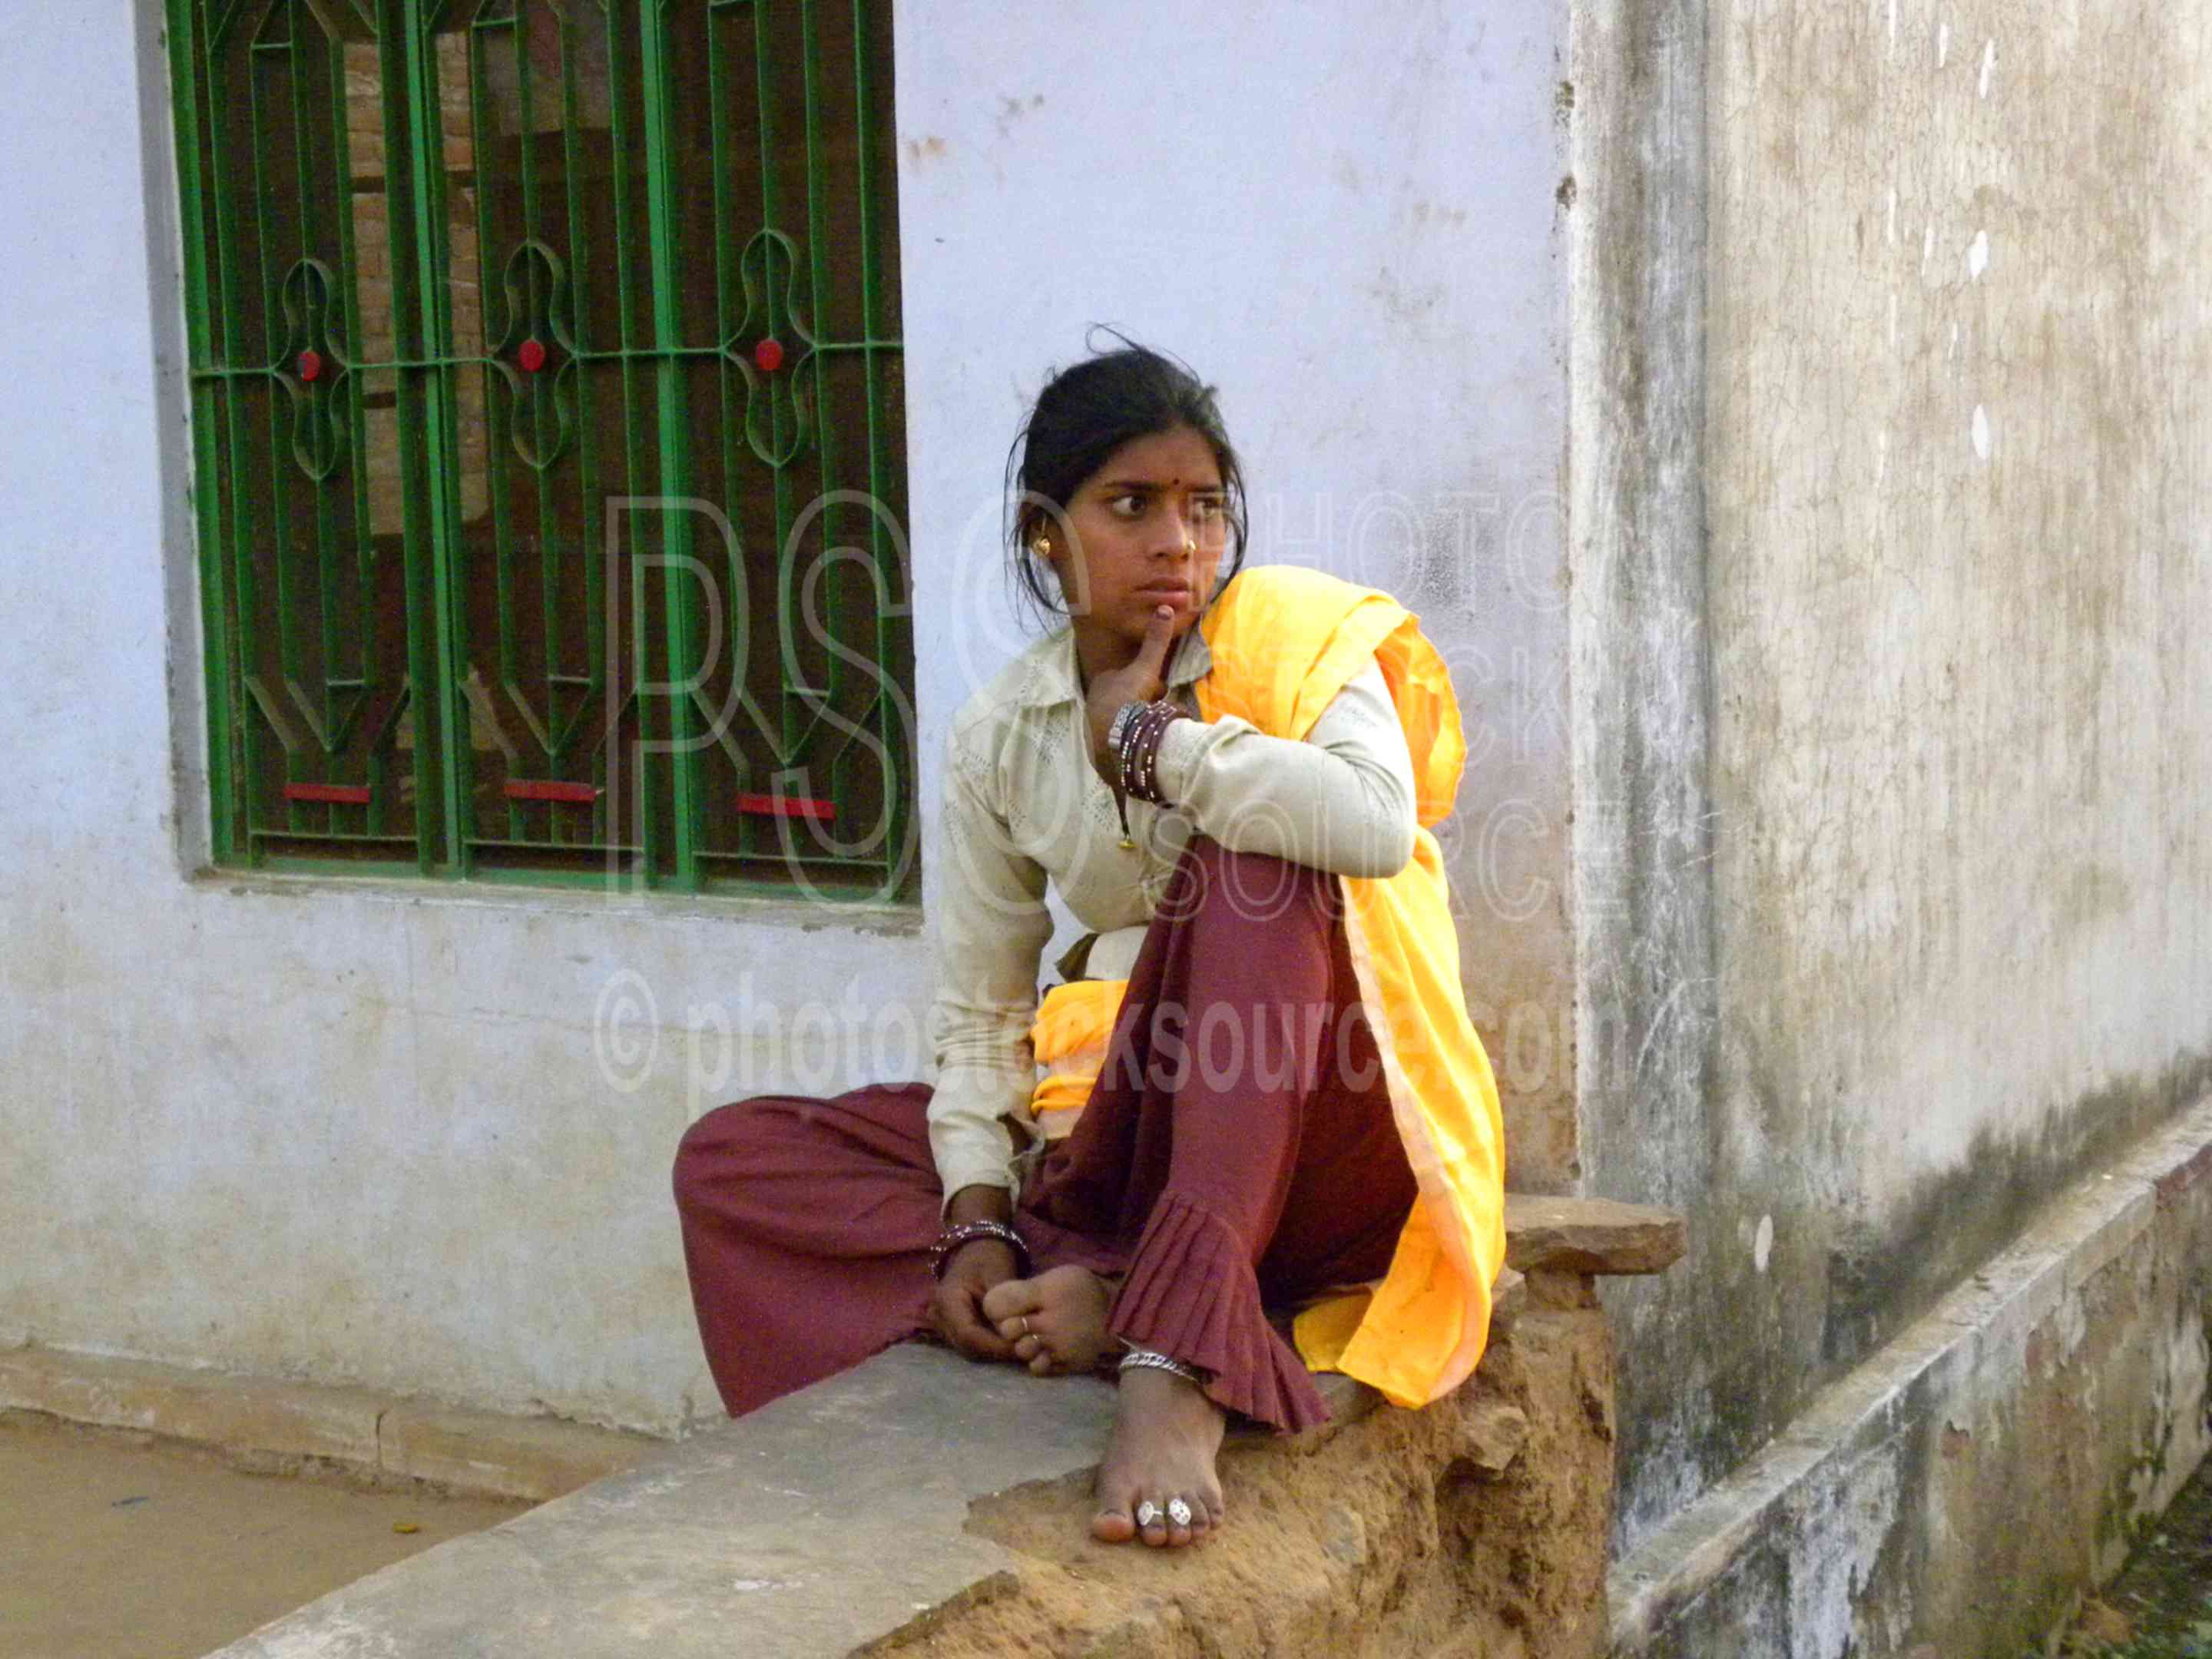 Woman Sitting on Wall,woman,young,colorful